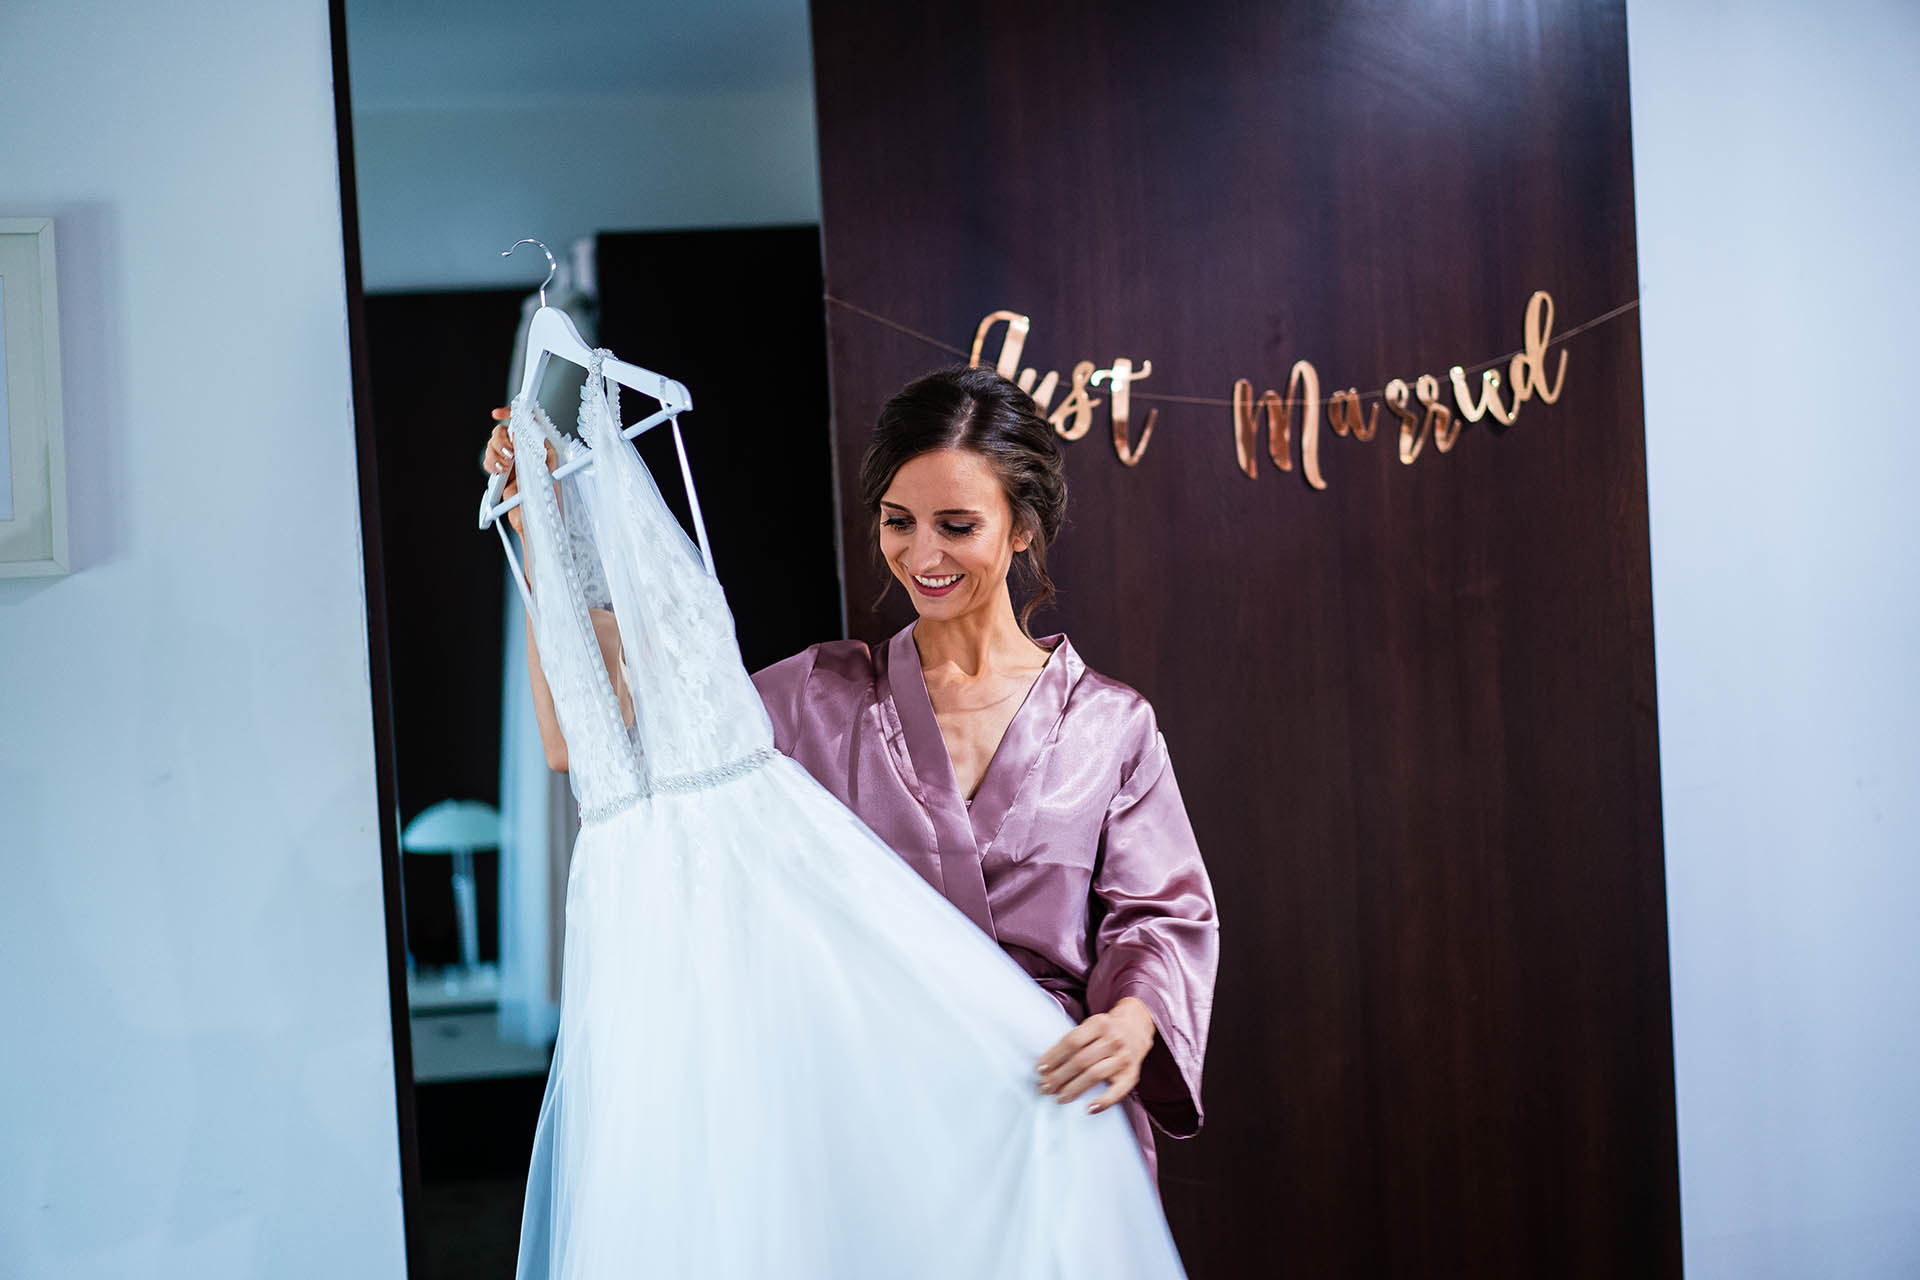 Villa Ekaterina, Vakarel, Bulgaria Wedding Photography | The bride smiles while looking at her wedding gown